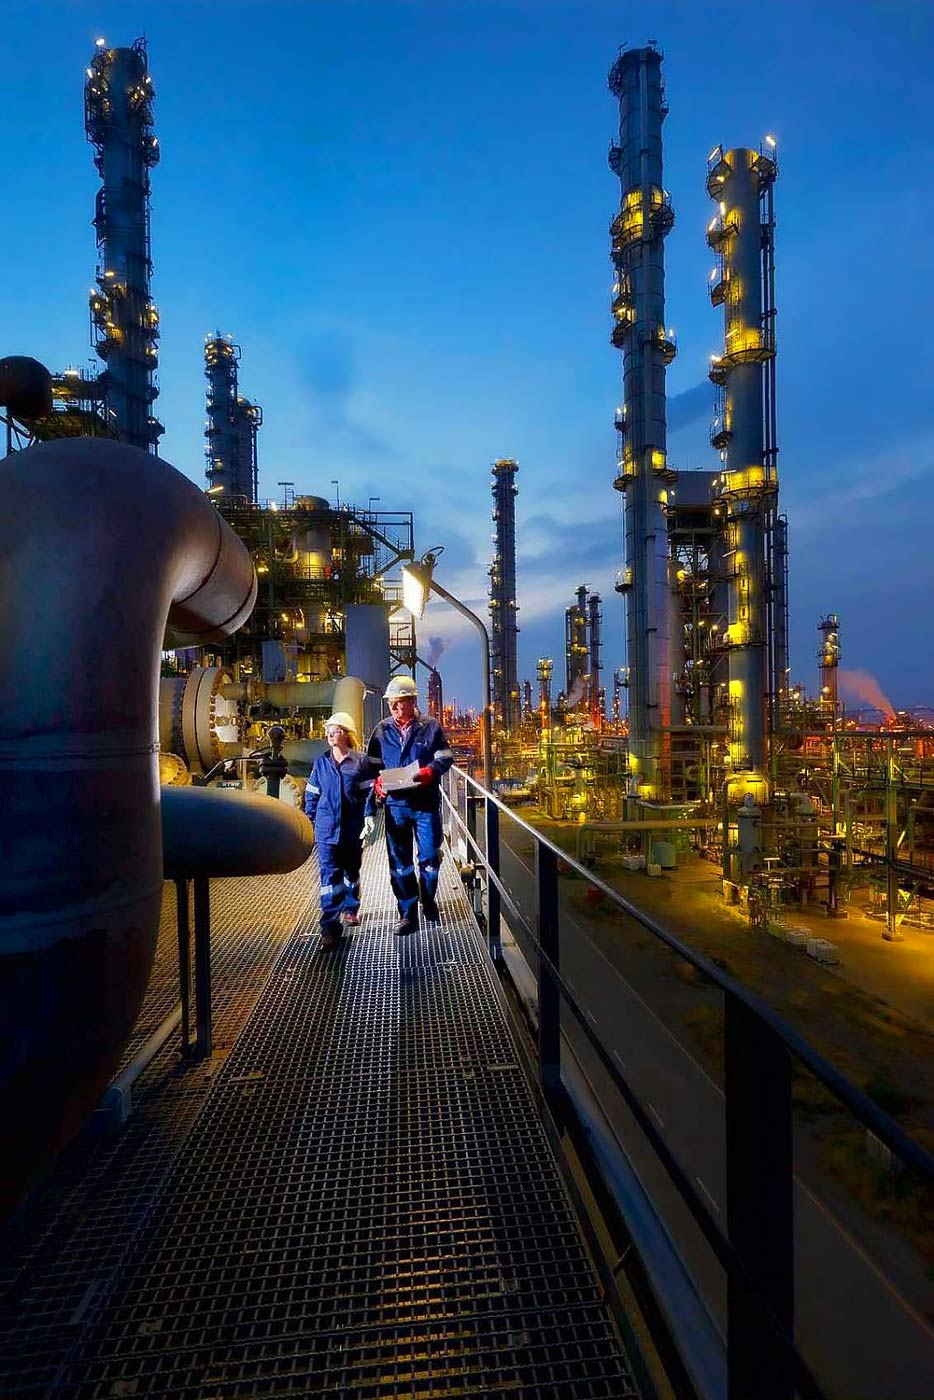 Plant inspection at a chemical plant - by industry photography service Planet KB